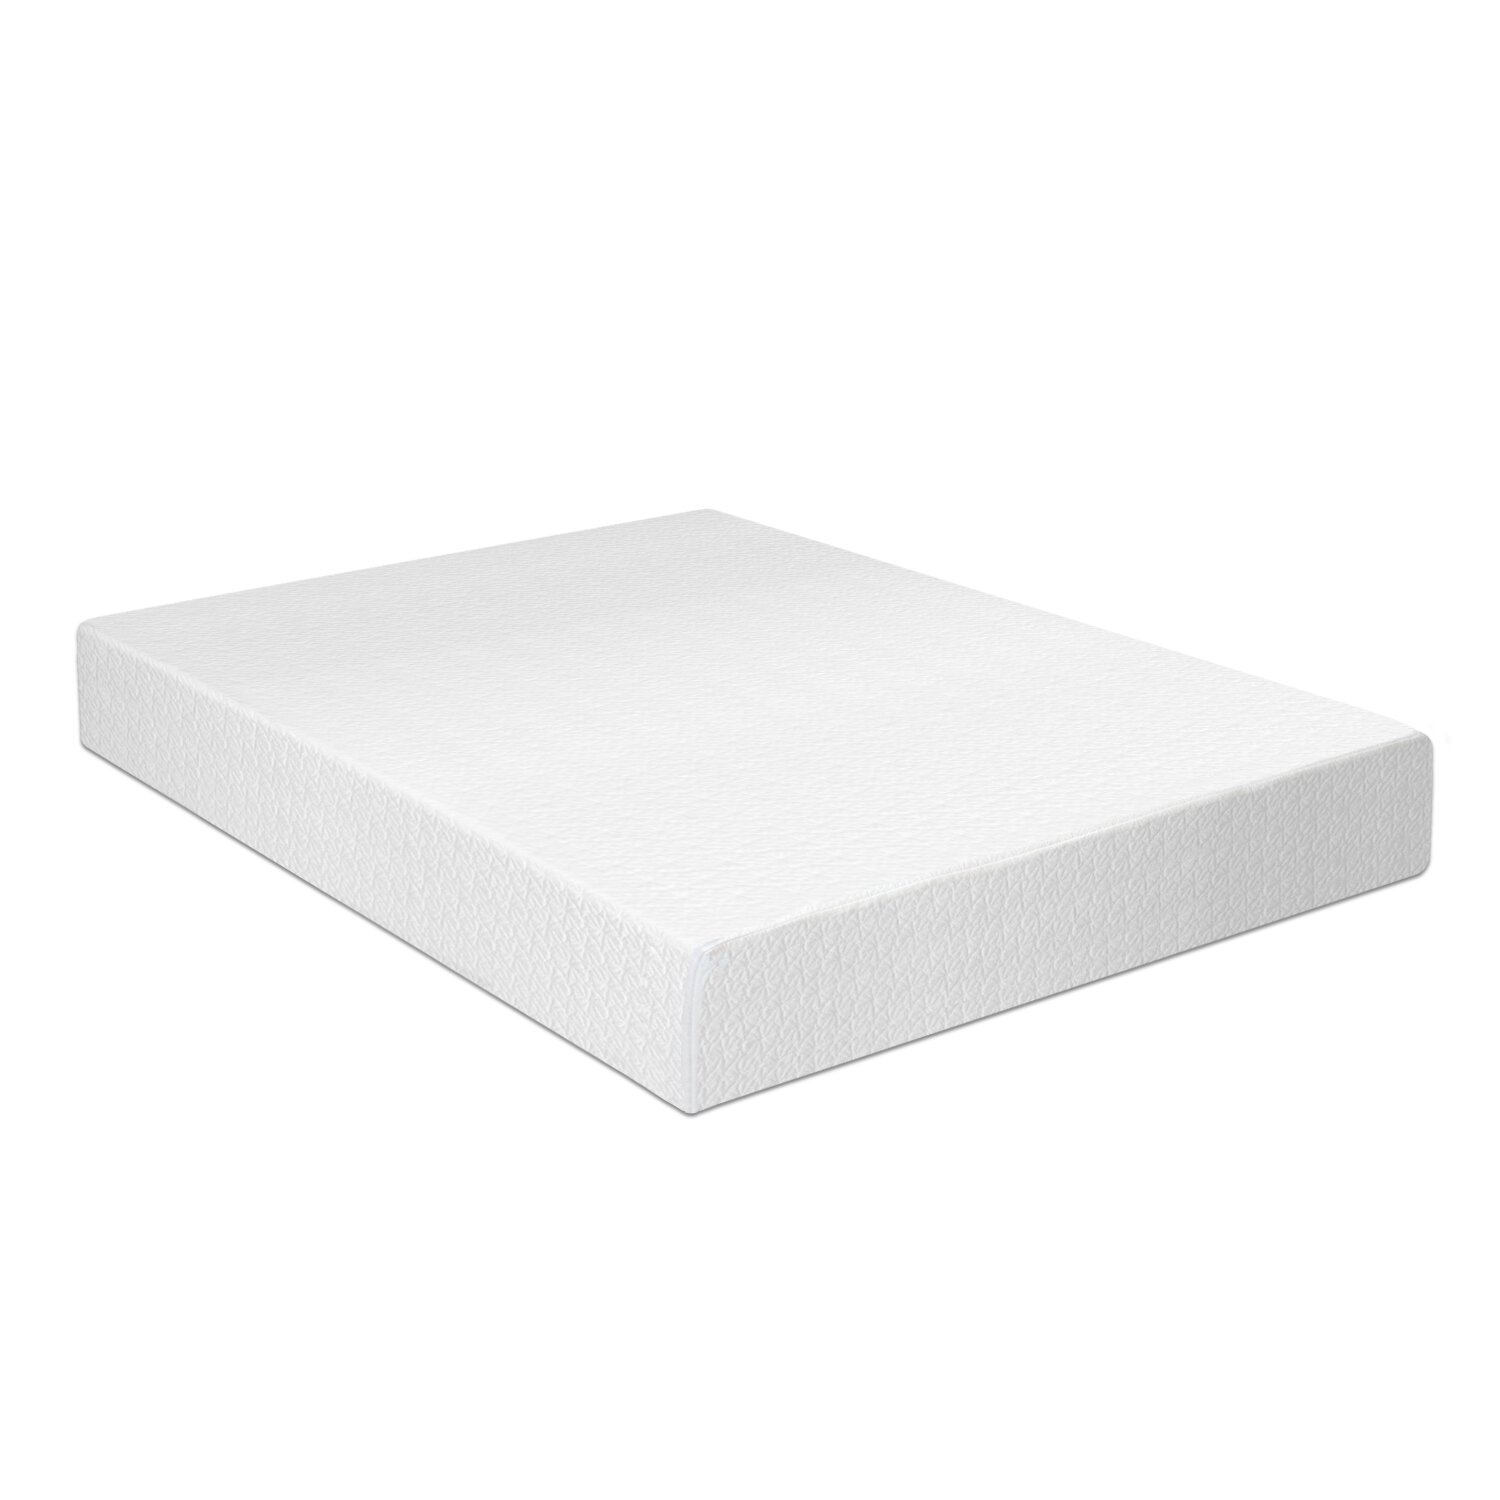 best price quality best price quality 12 memory foam mattress reviews wayfair. Black Bedroom Furniture Sets. Home Design Ideas